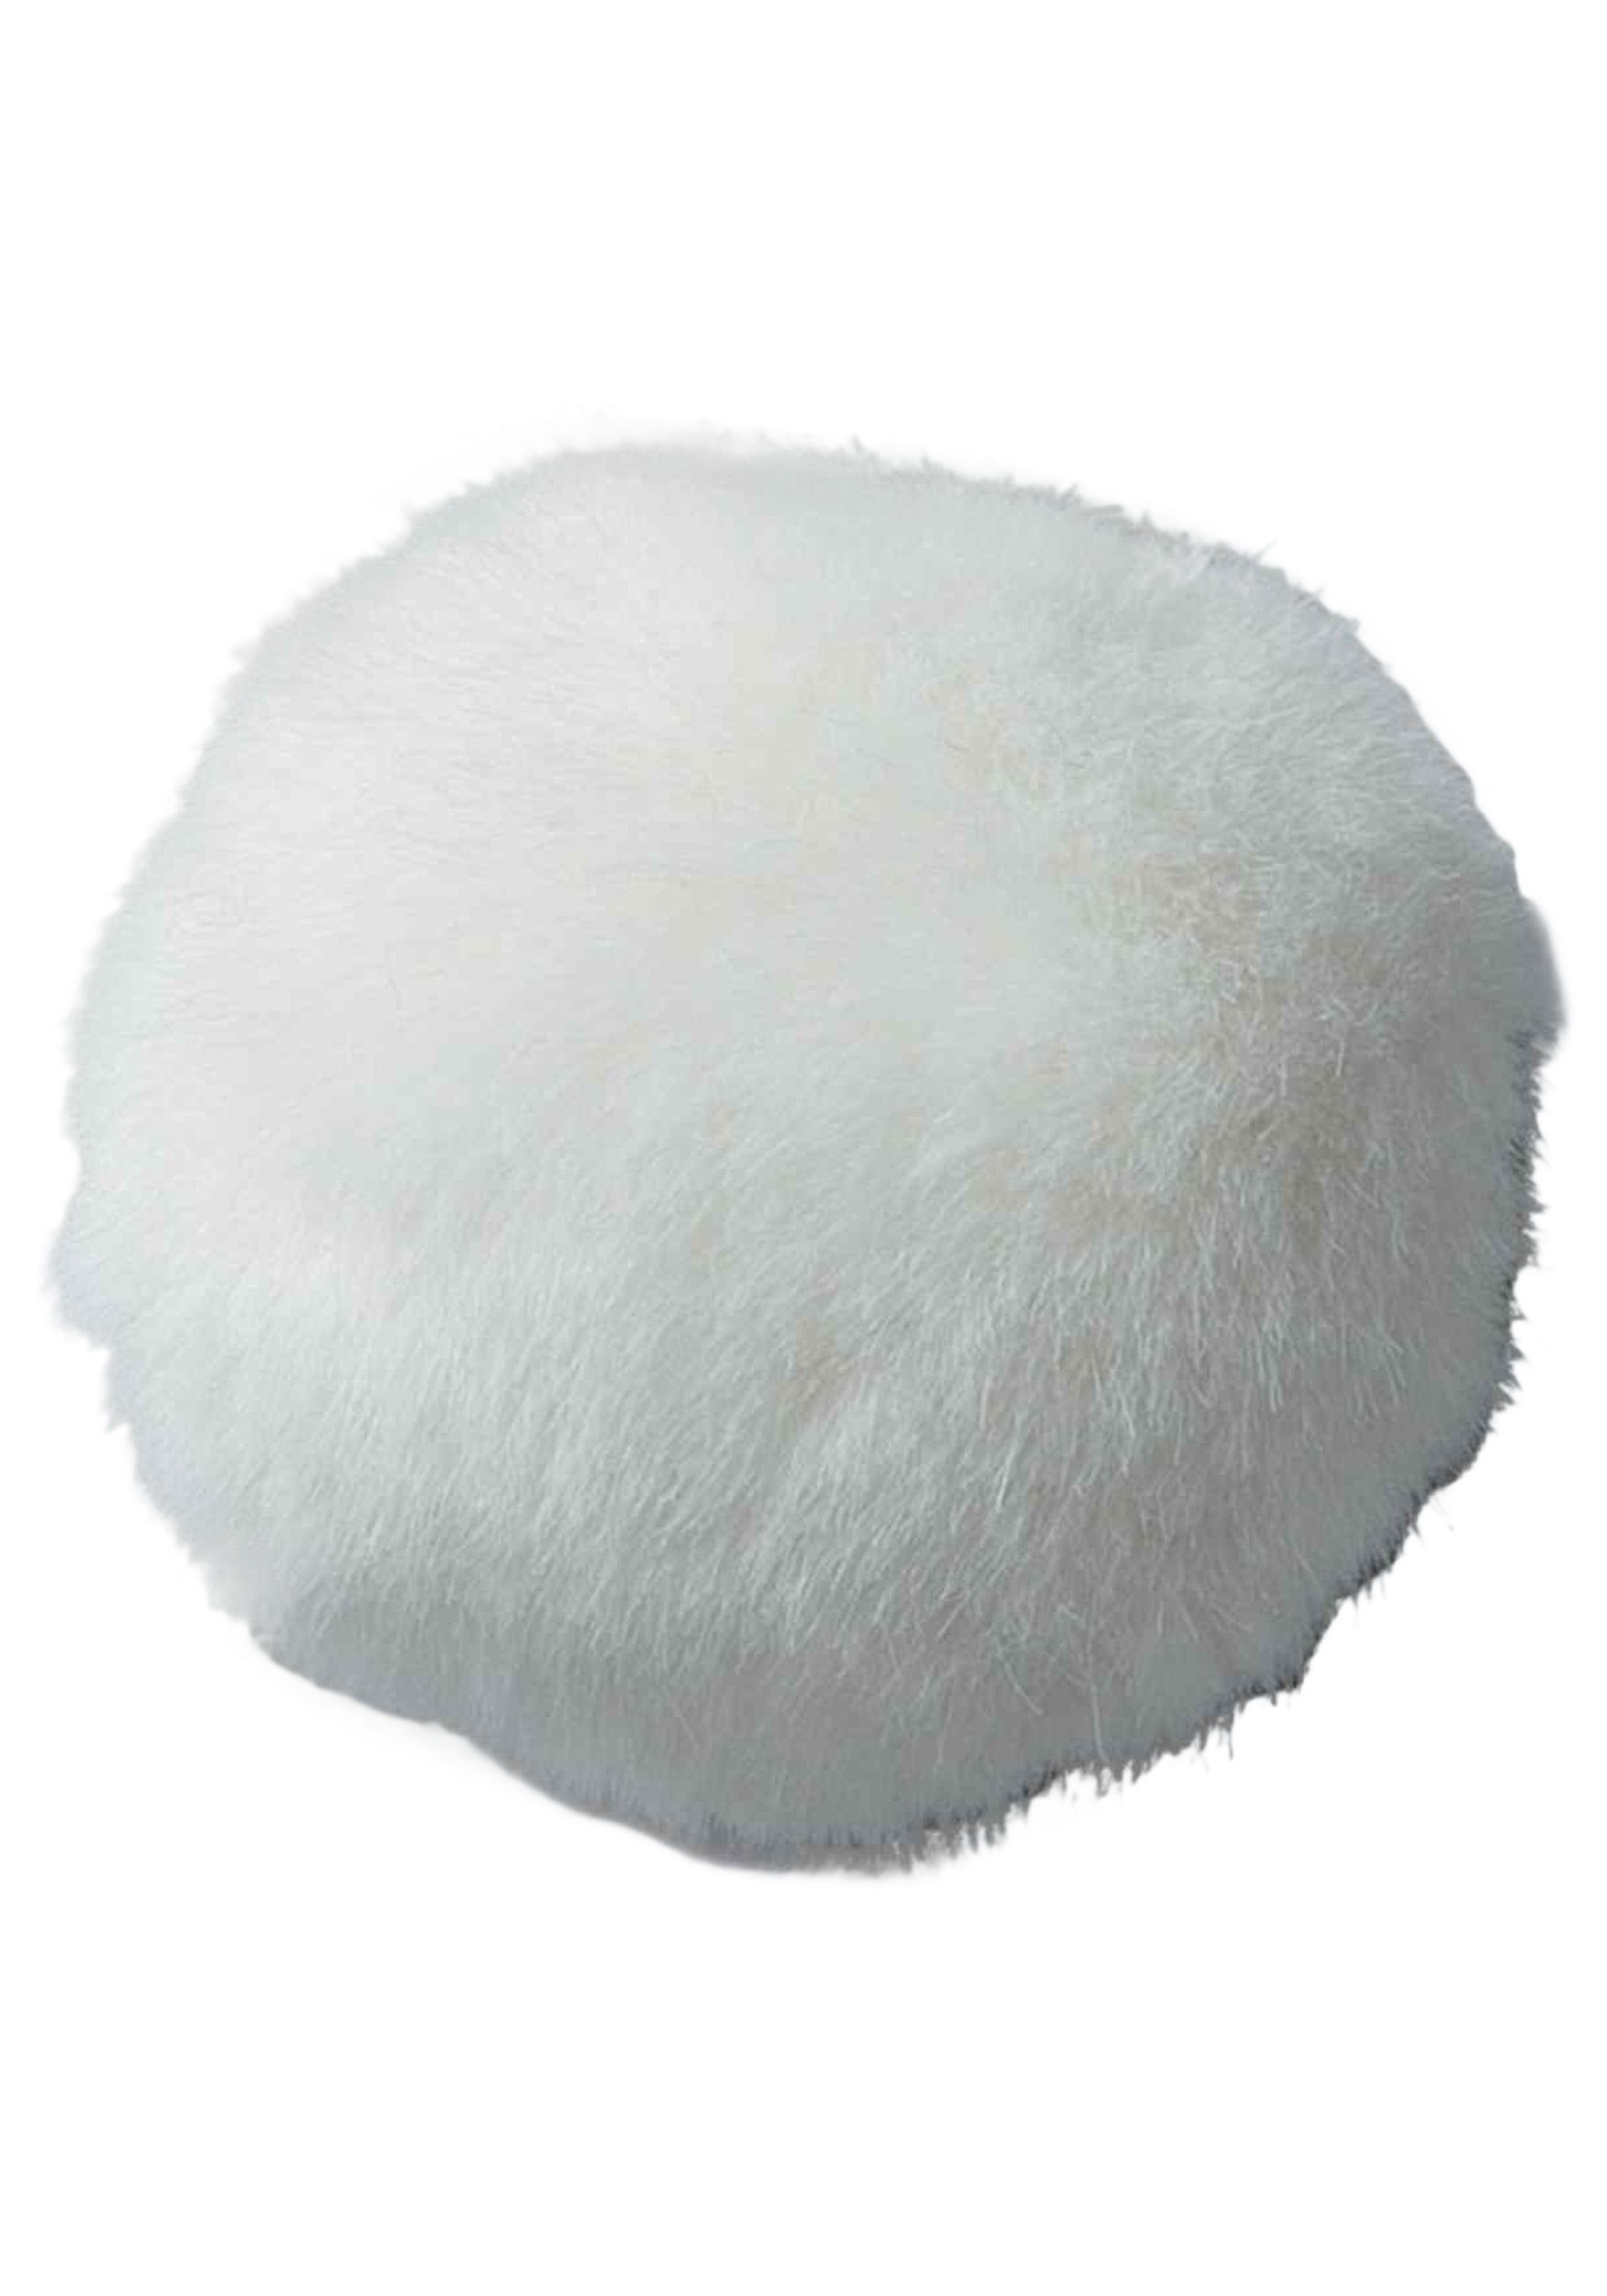 Bunny Tail Png & Free Bunny Tail.png Transparent Images #15195.